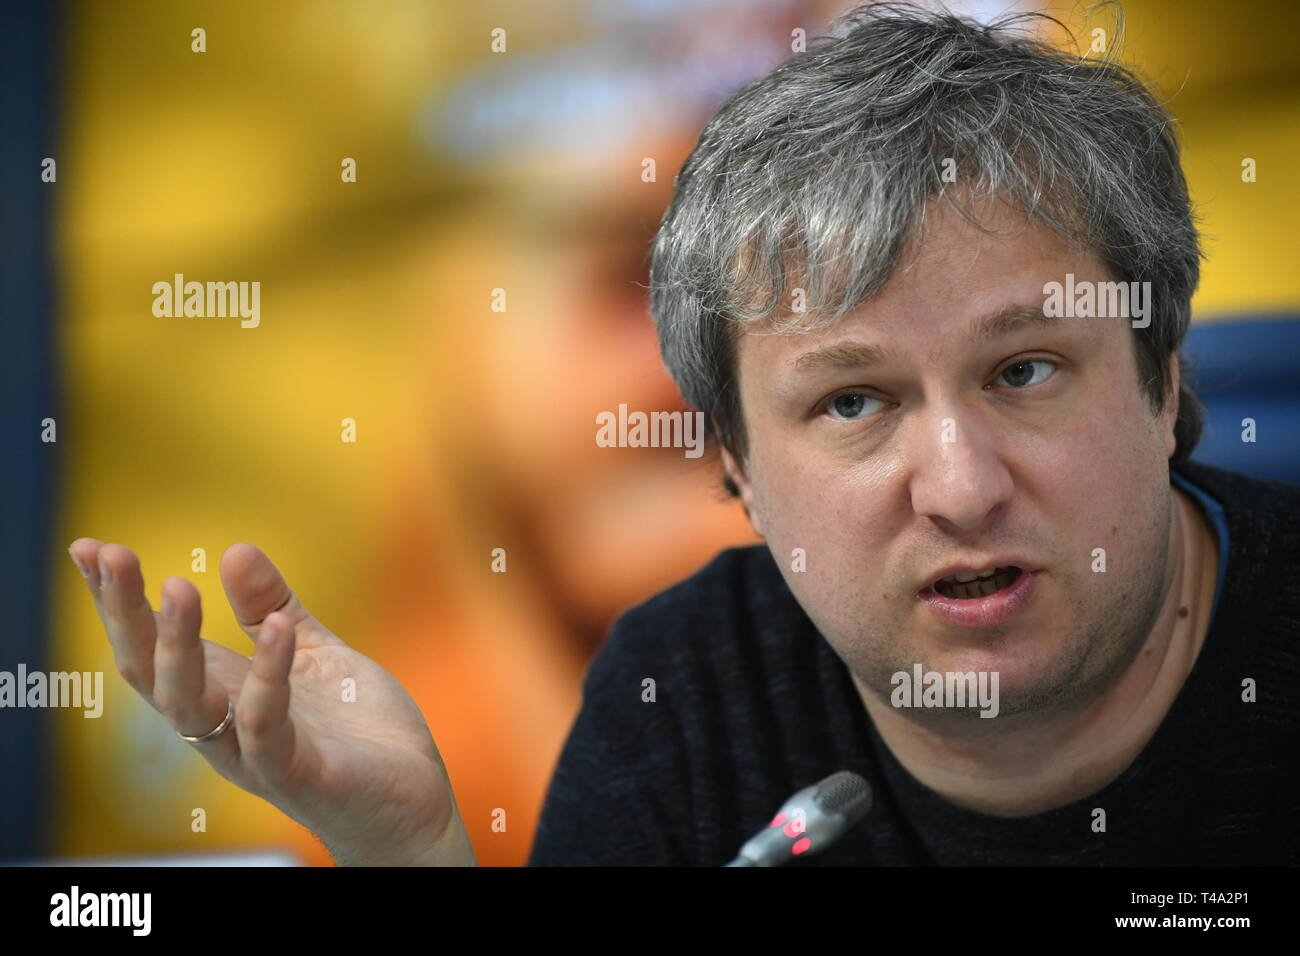 MOSCOW, RUSSIA - APRIL 15, 2019: Cinema critic Anton Dolin, editor-in-chief of the Iskusstvo Kino Magazine, during a press conference on the 2019 French-Israeli drama film Synonyms, winner of the Golden Bear at the 69th Berlin International Film Festival. Maxim Grigoryev/TASS Stock Photo